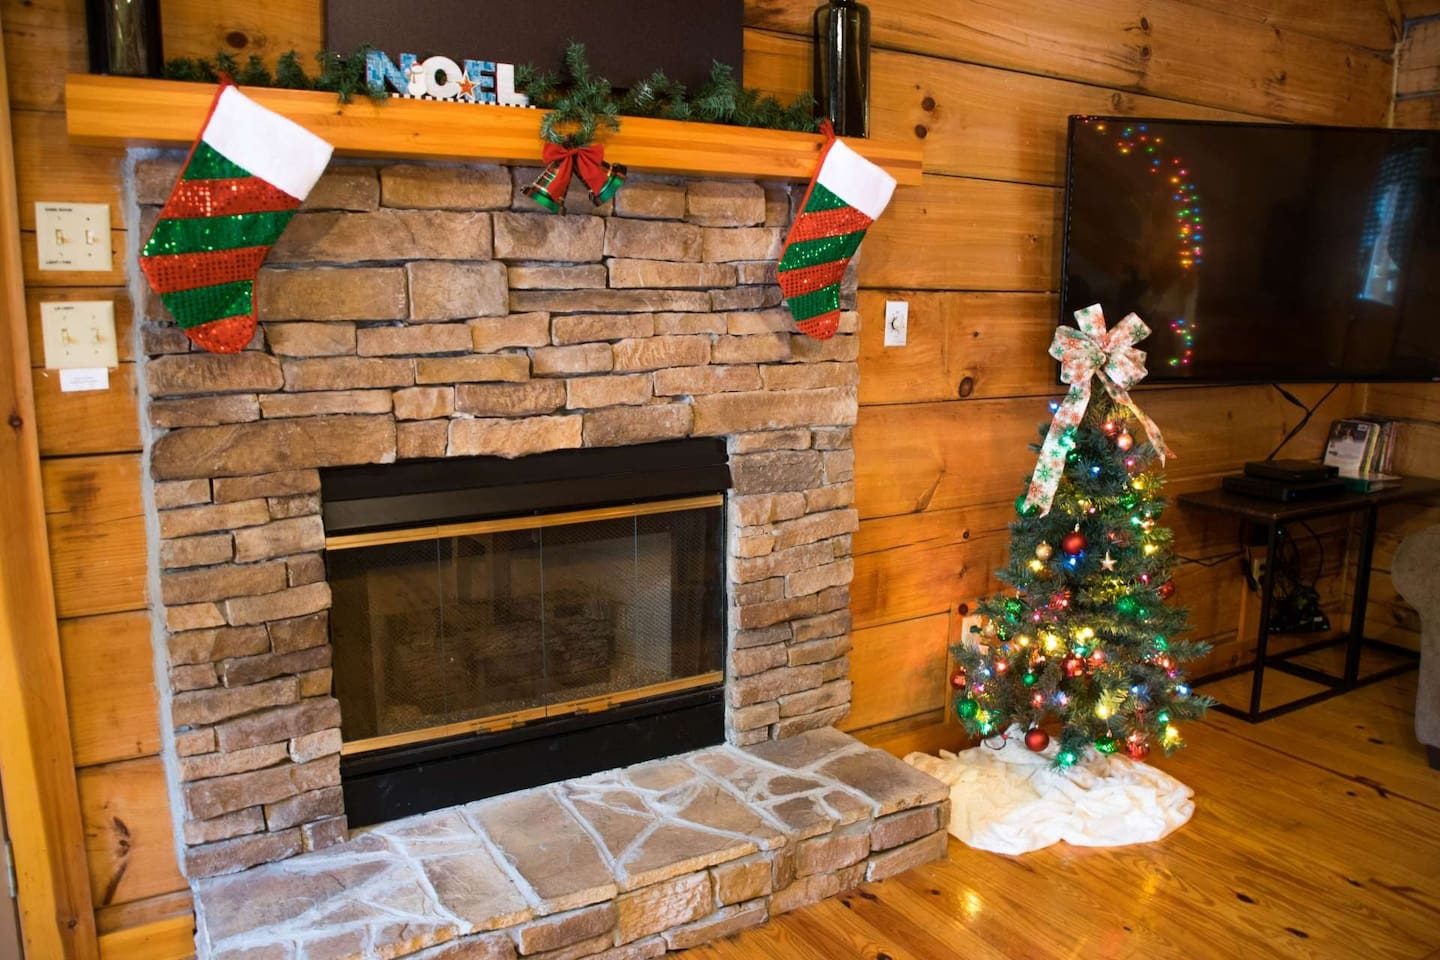 Curl up by the fireplace and share some hot cocoa with your special loved ones.  Enjoy your Holiday Season!